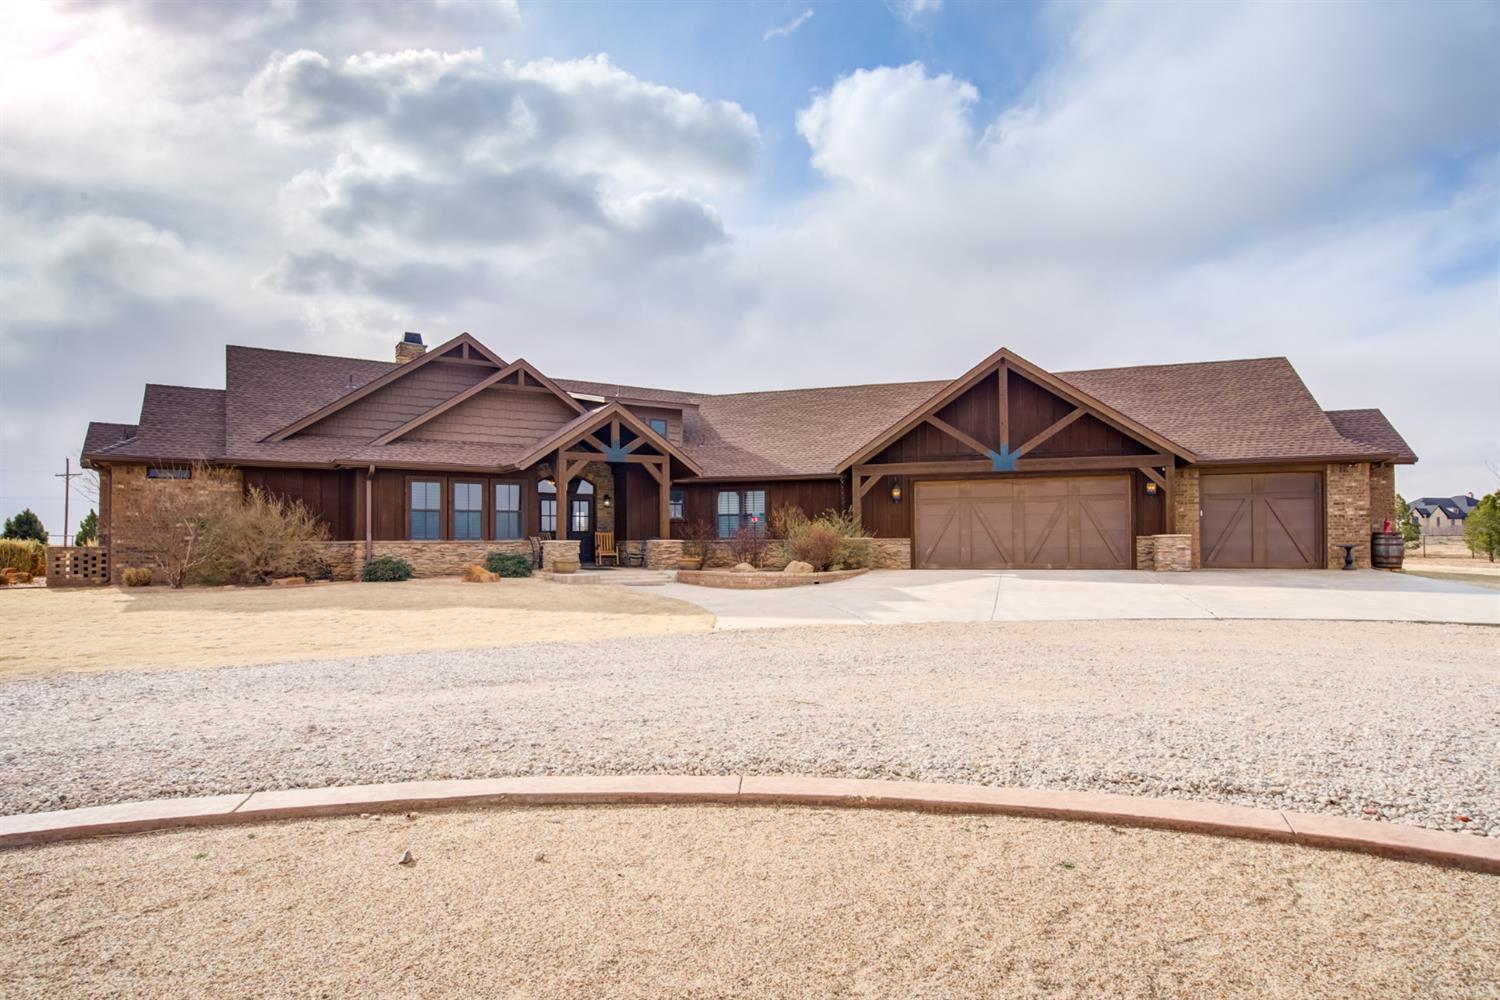 Shallowater Country Estate complete with all the amenities you can imagine. Beautiful Rustic Modern Ranch design sitting on 11 acres and loaded with amazing beam & truss features complemented by beautiful ledge rock. Woodwork detail is amazing in this open plan with 4 bedrooms, 4 bath, basement, office, and a supersized 3 car garage. The master retreat will not disappoint and the views form all rooms are spectacular. Step outdoors to the amazing patios and enjoy the West Texas sunsets. The entire acreage is fenced w/ pipe and cable. The barn/shop is designed w/plenty of storage for equipment, 2 overhead doors, large work space and access for working animals in the adjacent pens. As a bonus it has an apartment which is air conditioned and has full bath. The garden also hits the mark with a green house, elevated beds, a chicken coop, and a brick pizza oven. If country living and animals is your cup of tea then you have found your paradise and located in the popular Shallowater ISD.